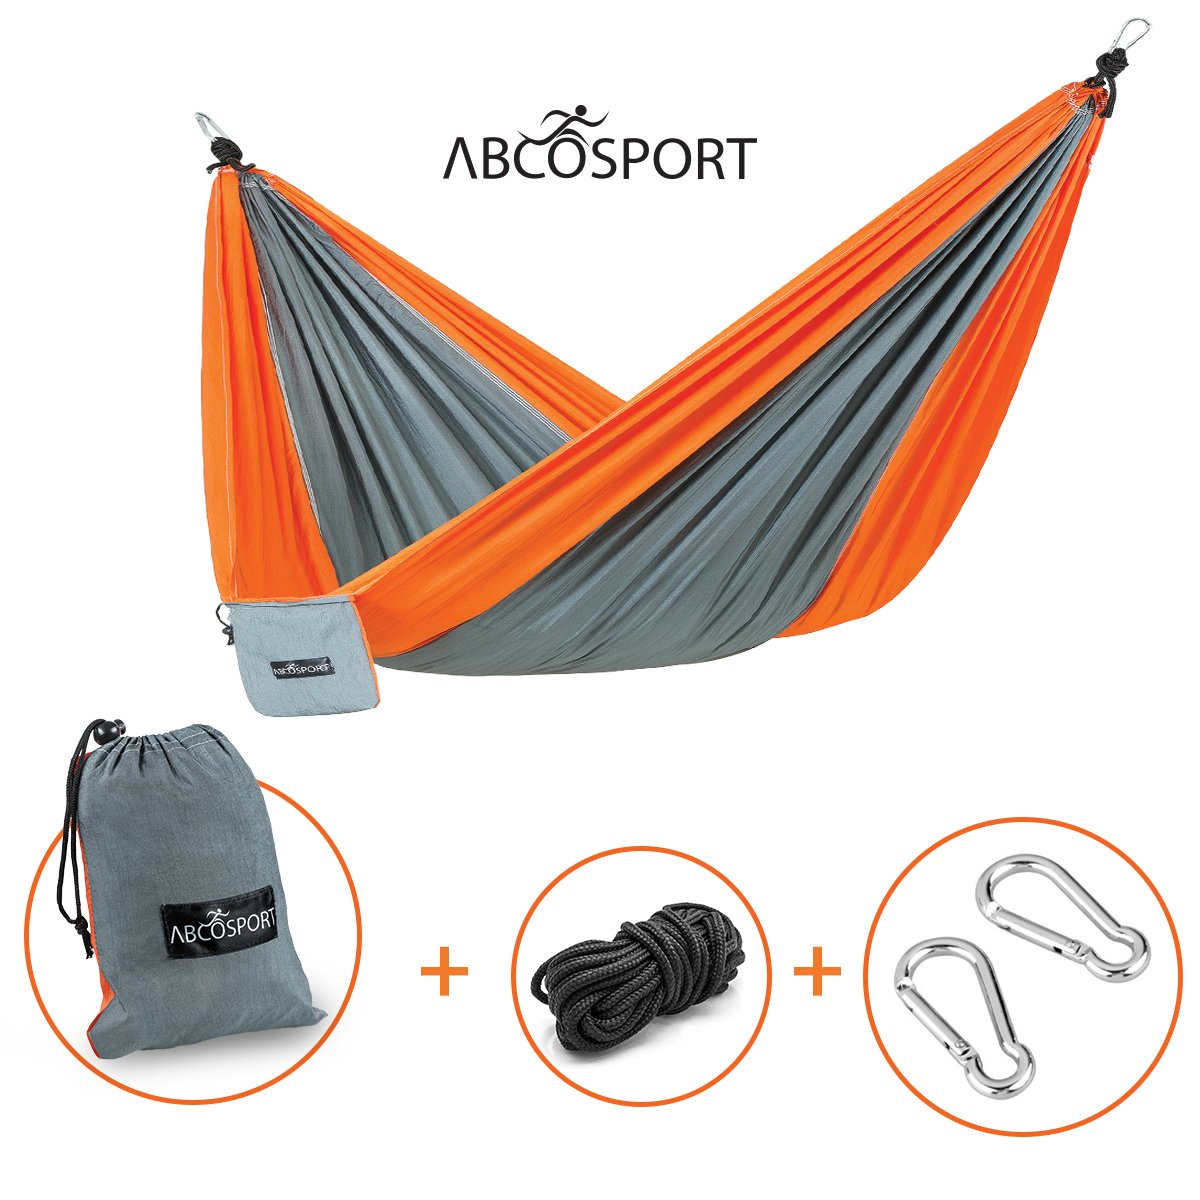 Camping Hammock - Portable Double Strong Nylon Parachute for Traveling, Hiking, Backpacking, Climbing & Outdoor Sleeping - Lightweight - Hammock Straps & Steel Carabiners Included - Easy to Install. by Abco Tech B01BCSRAOW